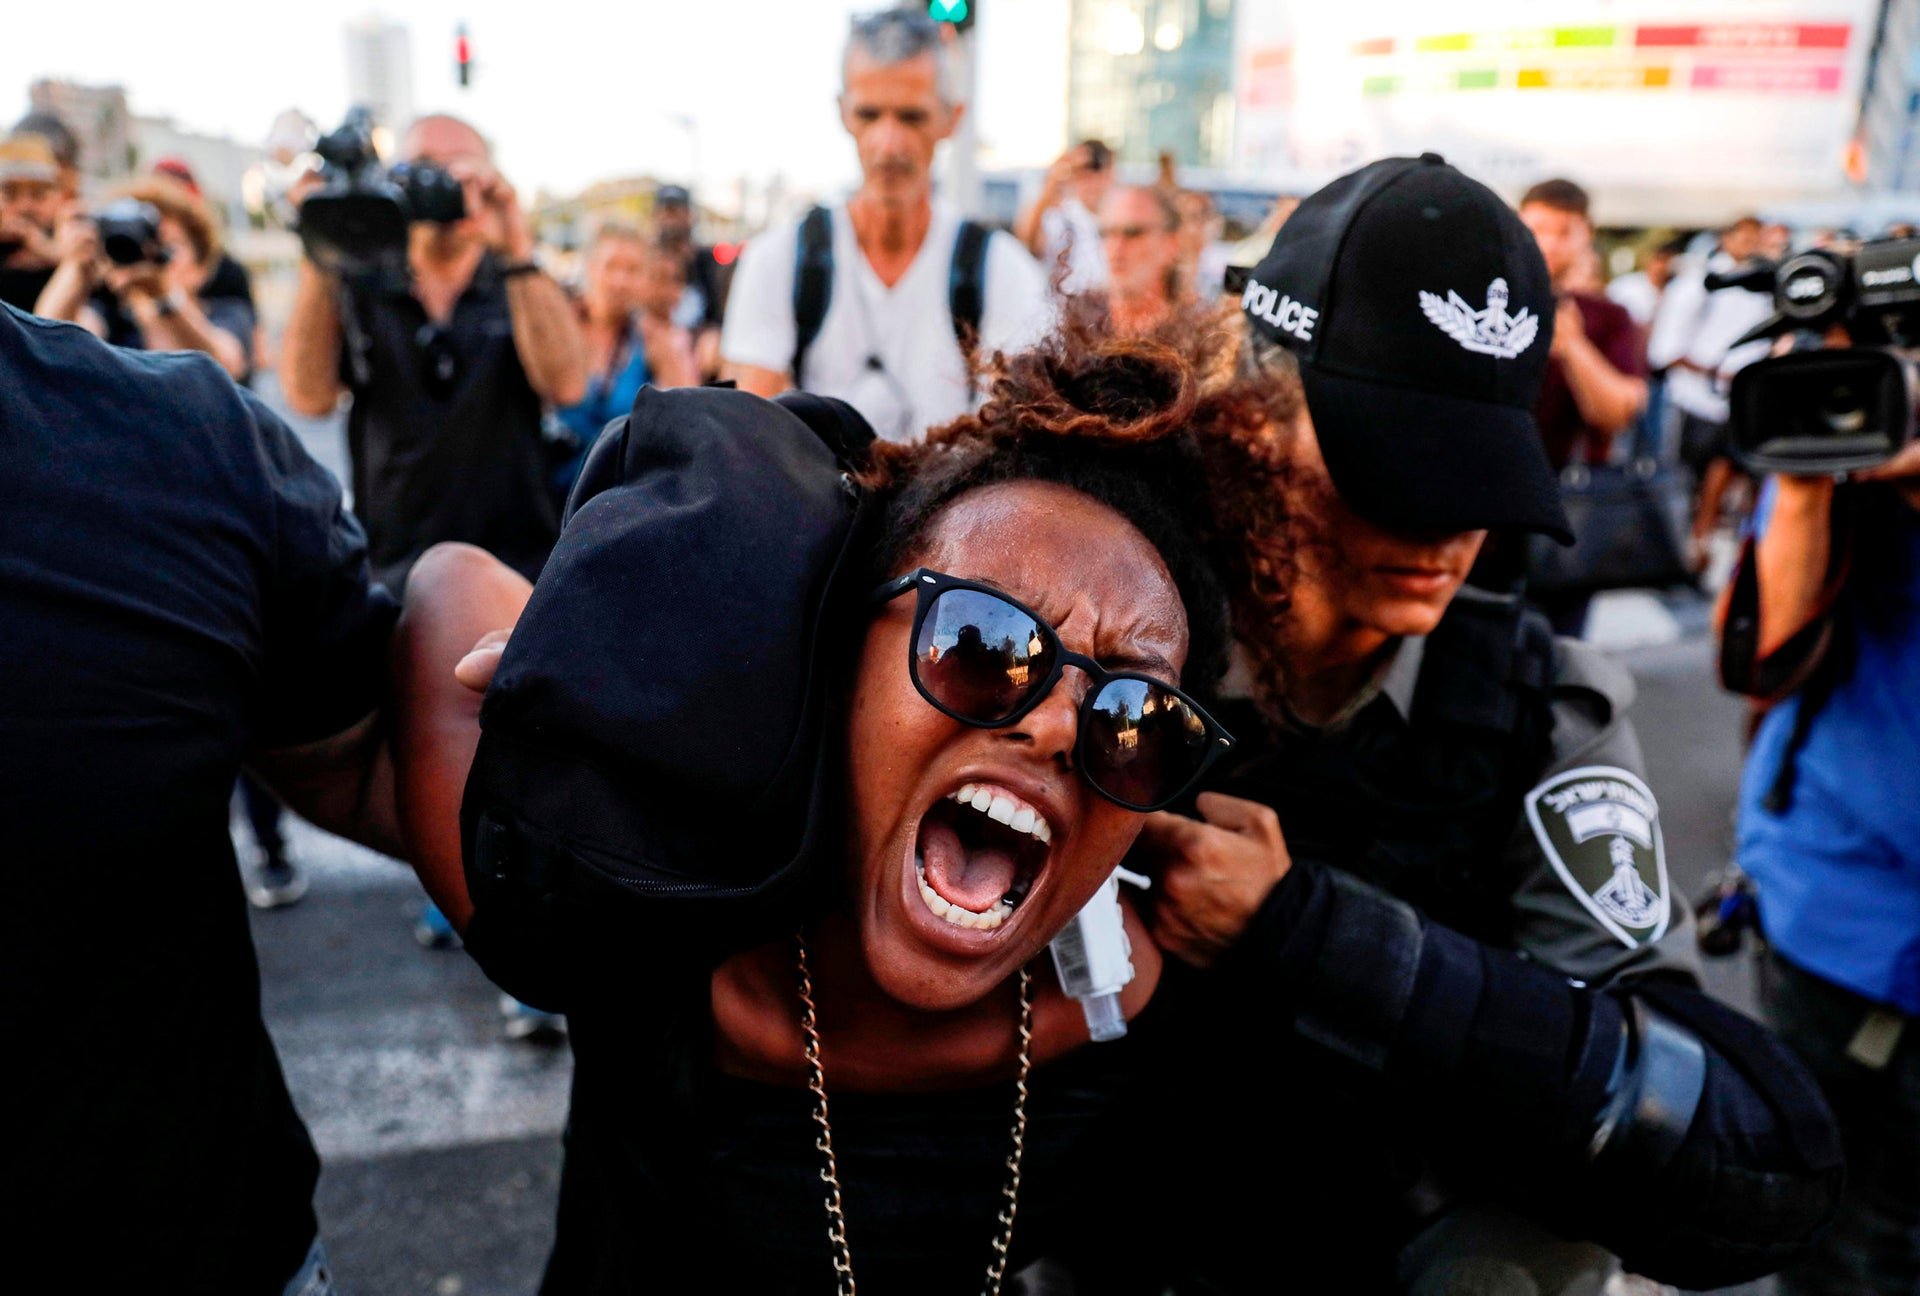 Members of the security forces detaining a protester during a demonstration against police brutality against Ethiopian Israelis, Tel Aviv, July 3, 2019.